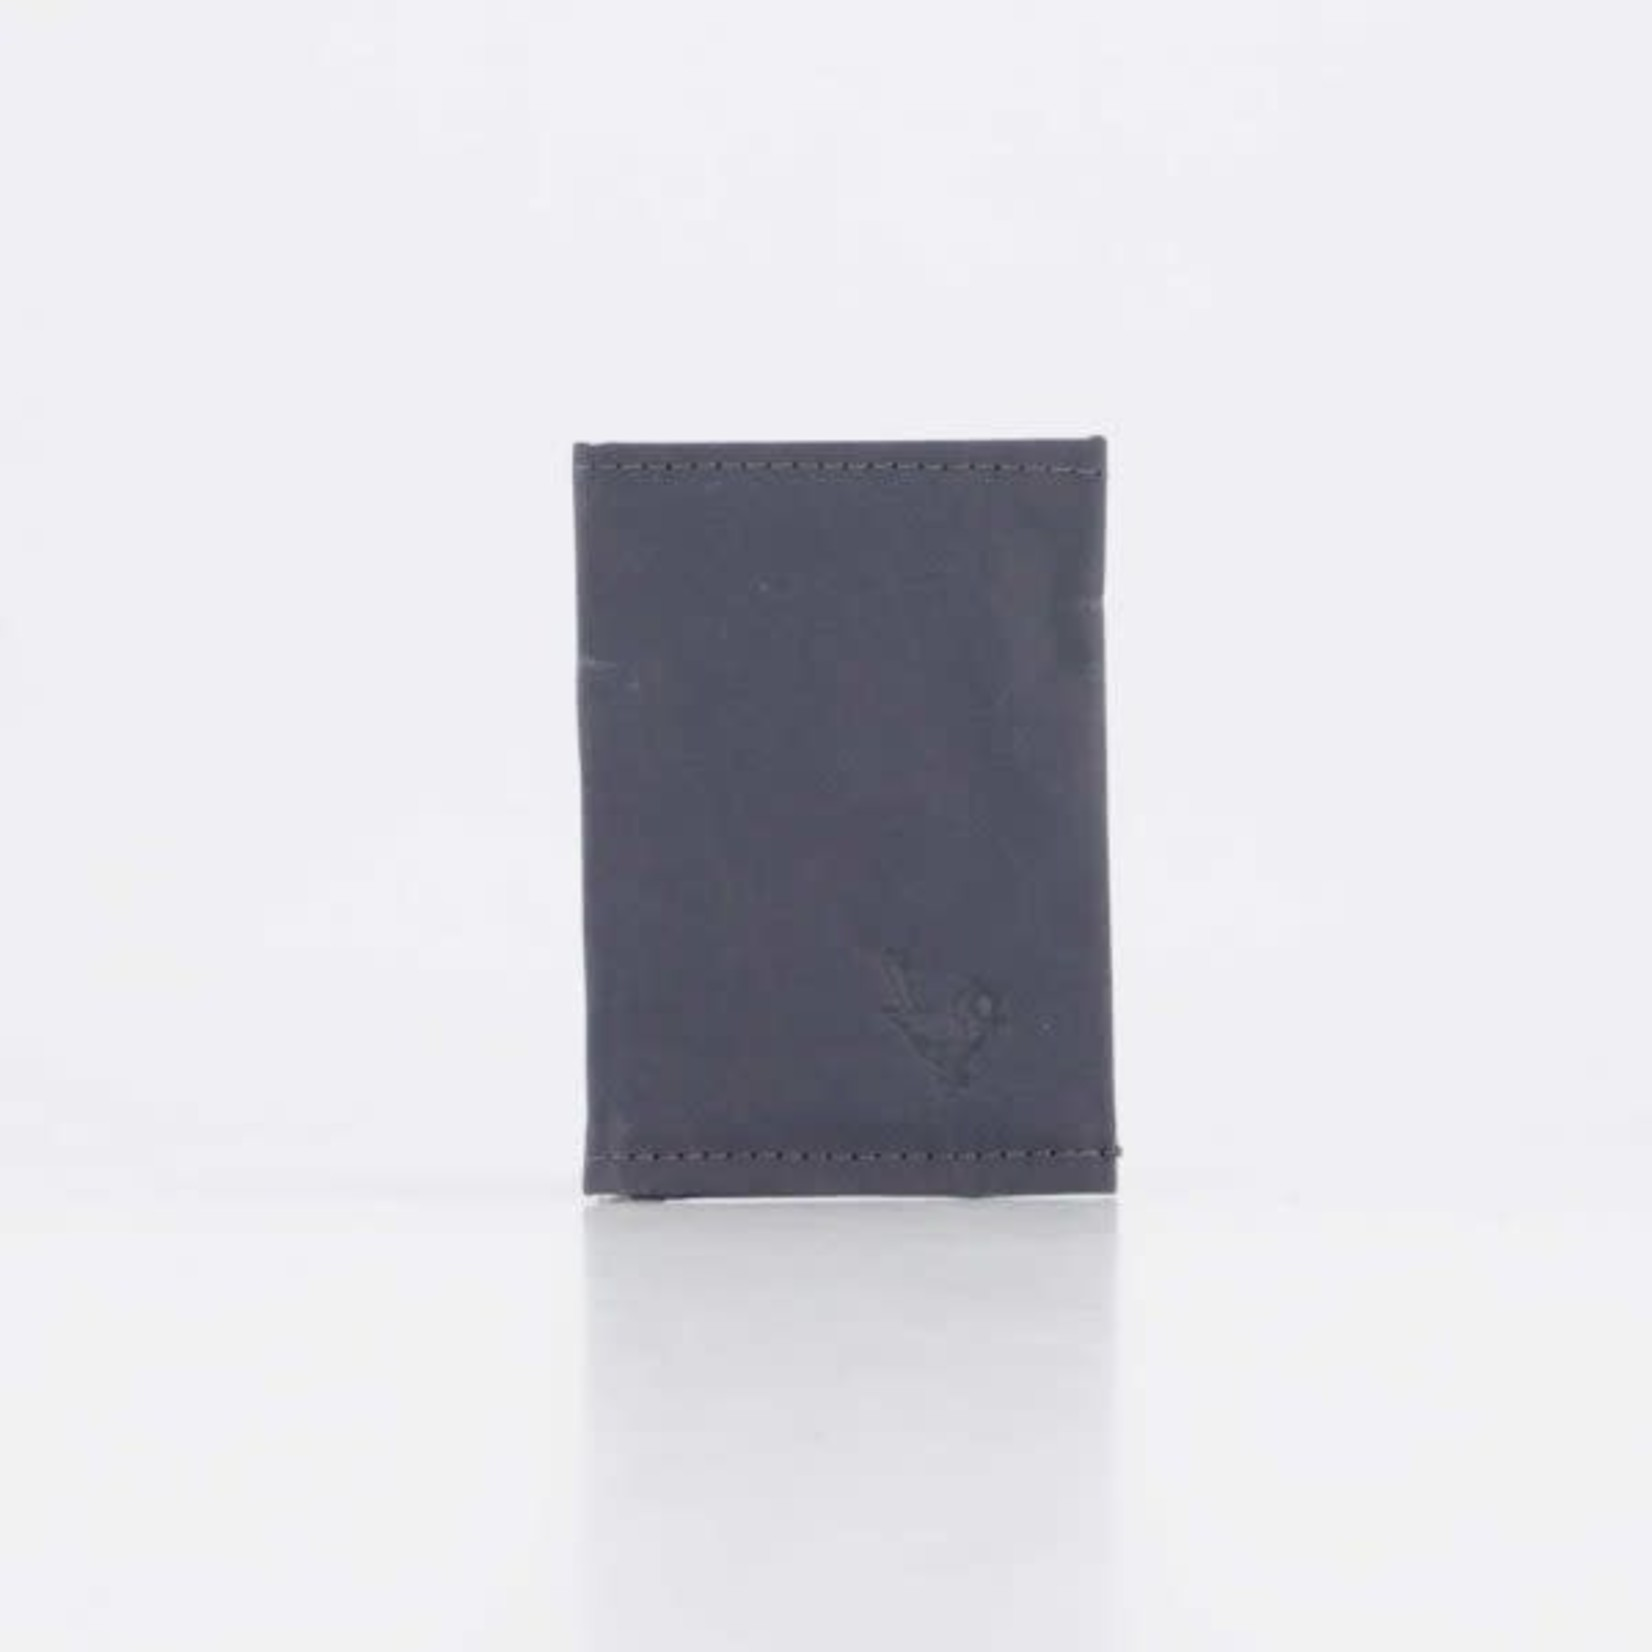 The Wren Design Paper Slim Wallet